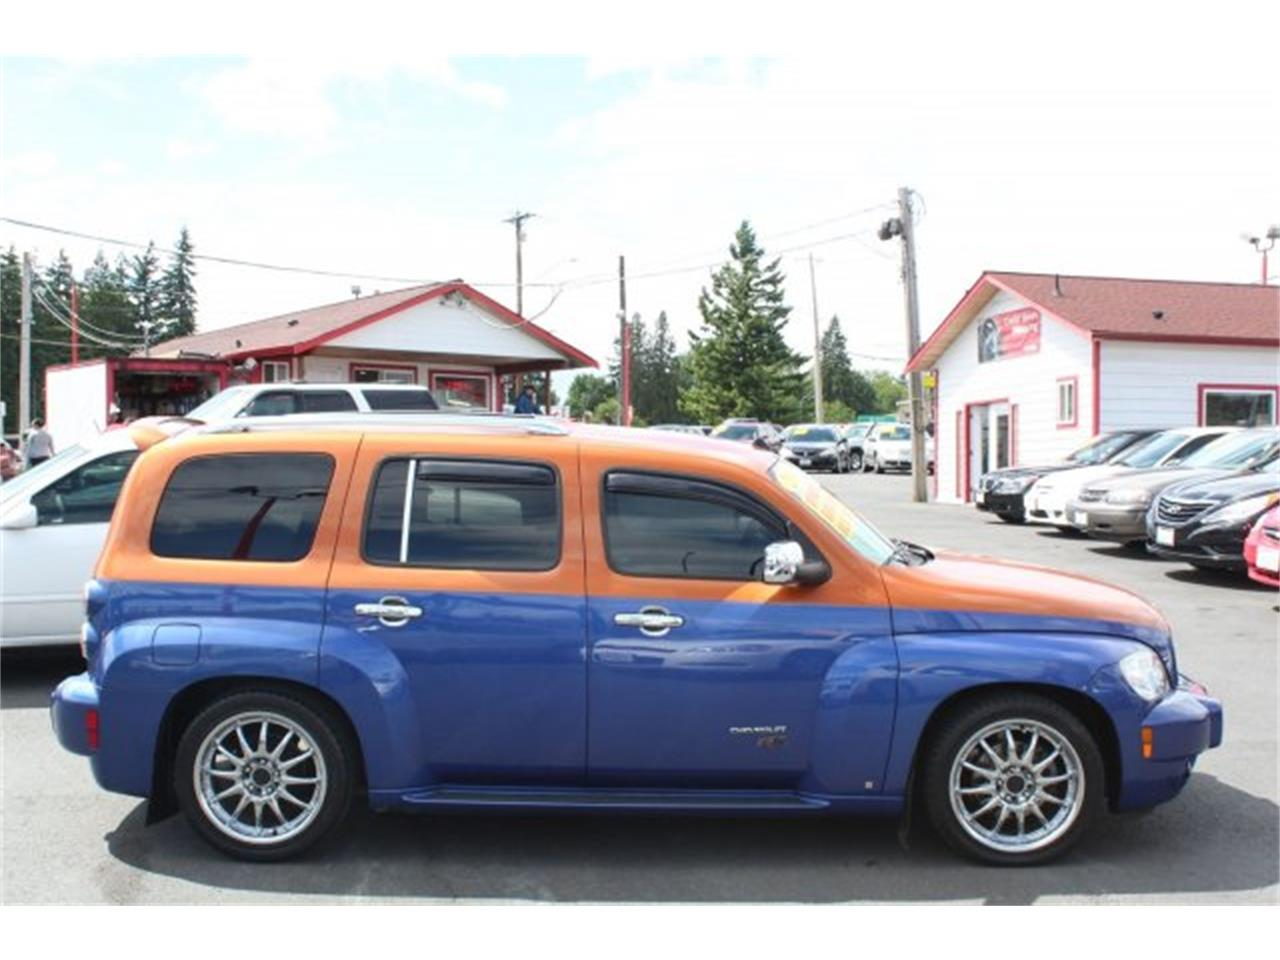 Large Picture of '06 Chevrolet HHR located in Lynnwood Washington - $6,995.00 - L42N